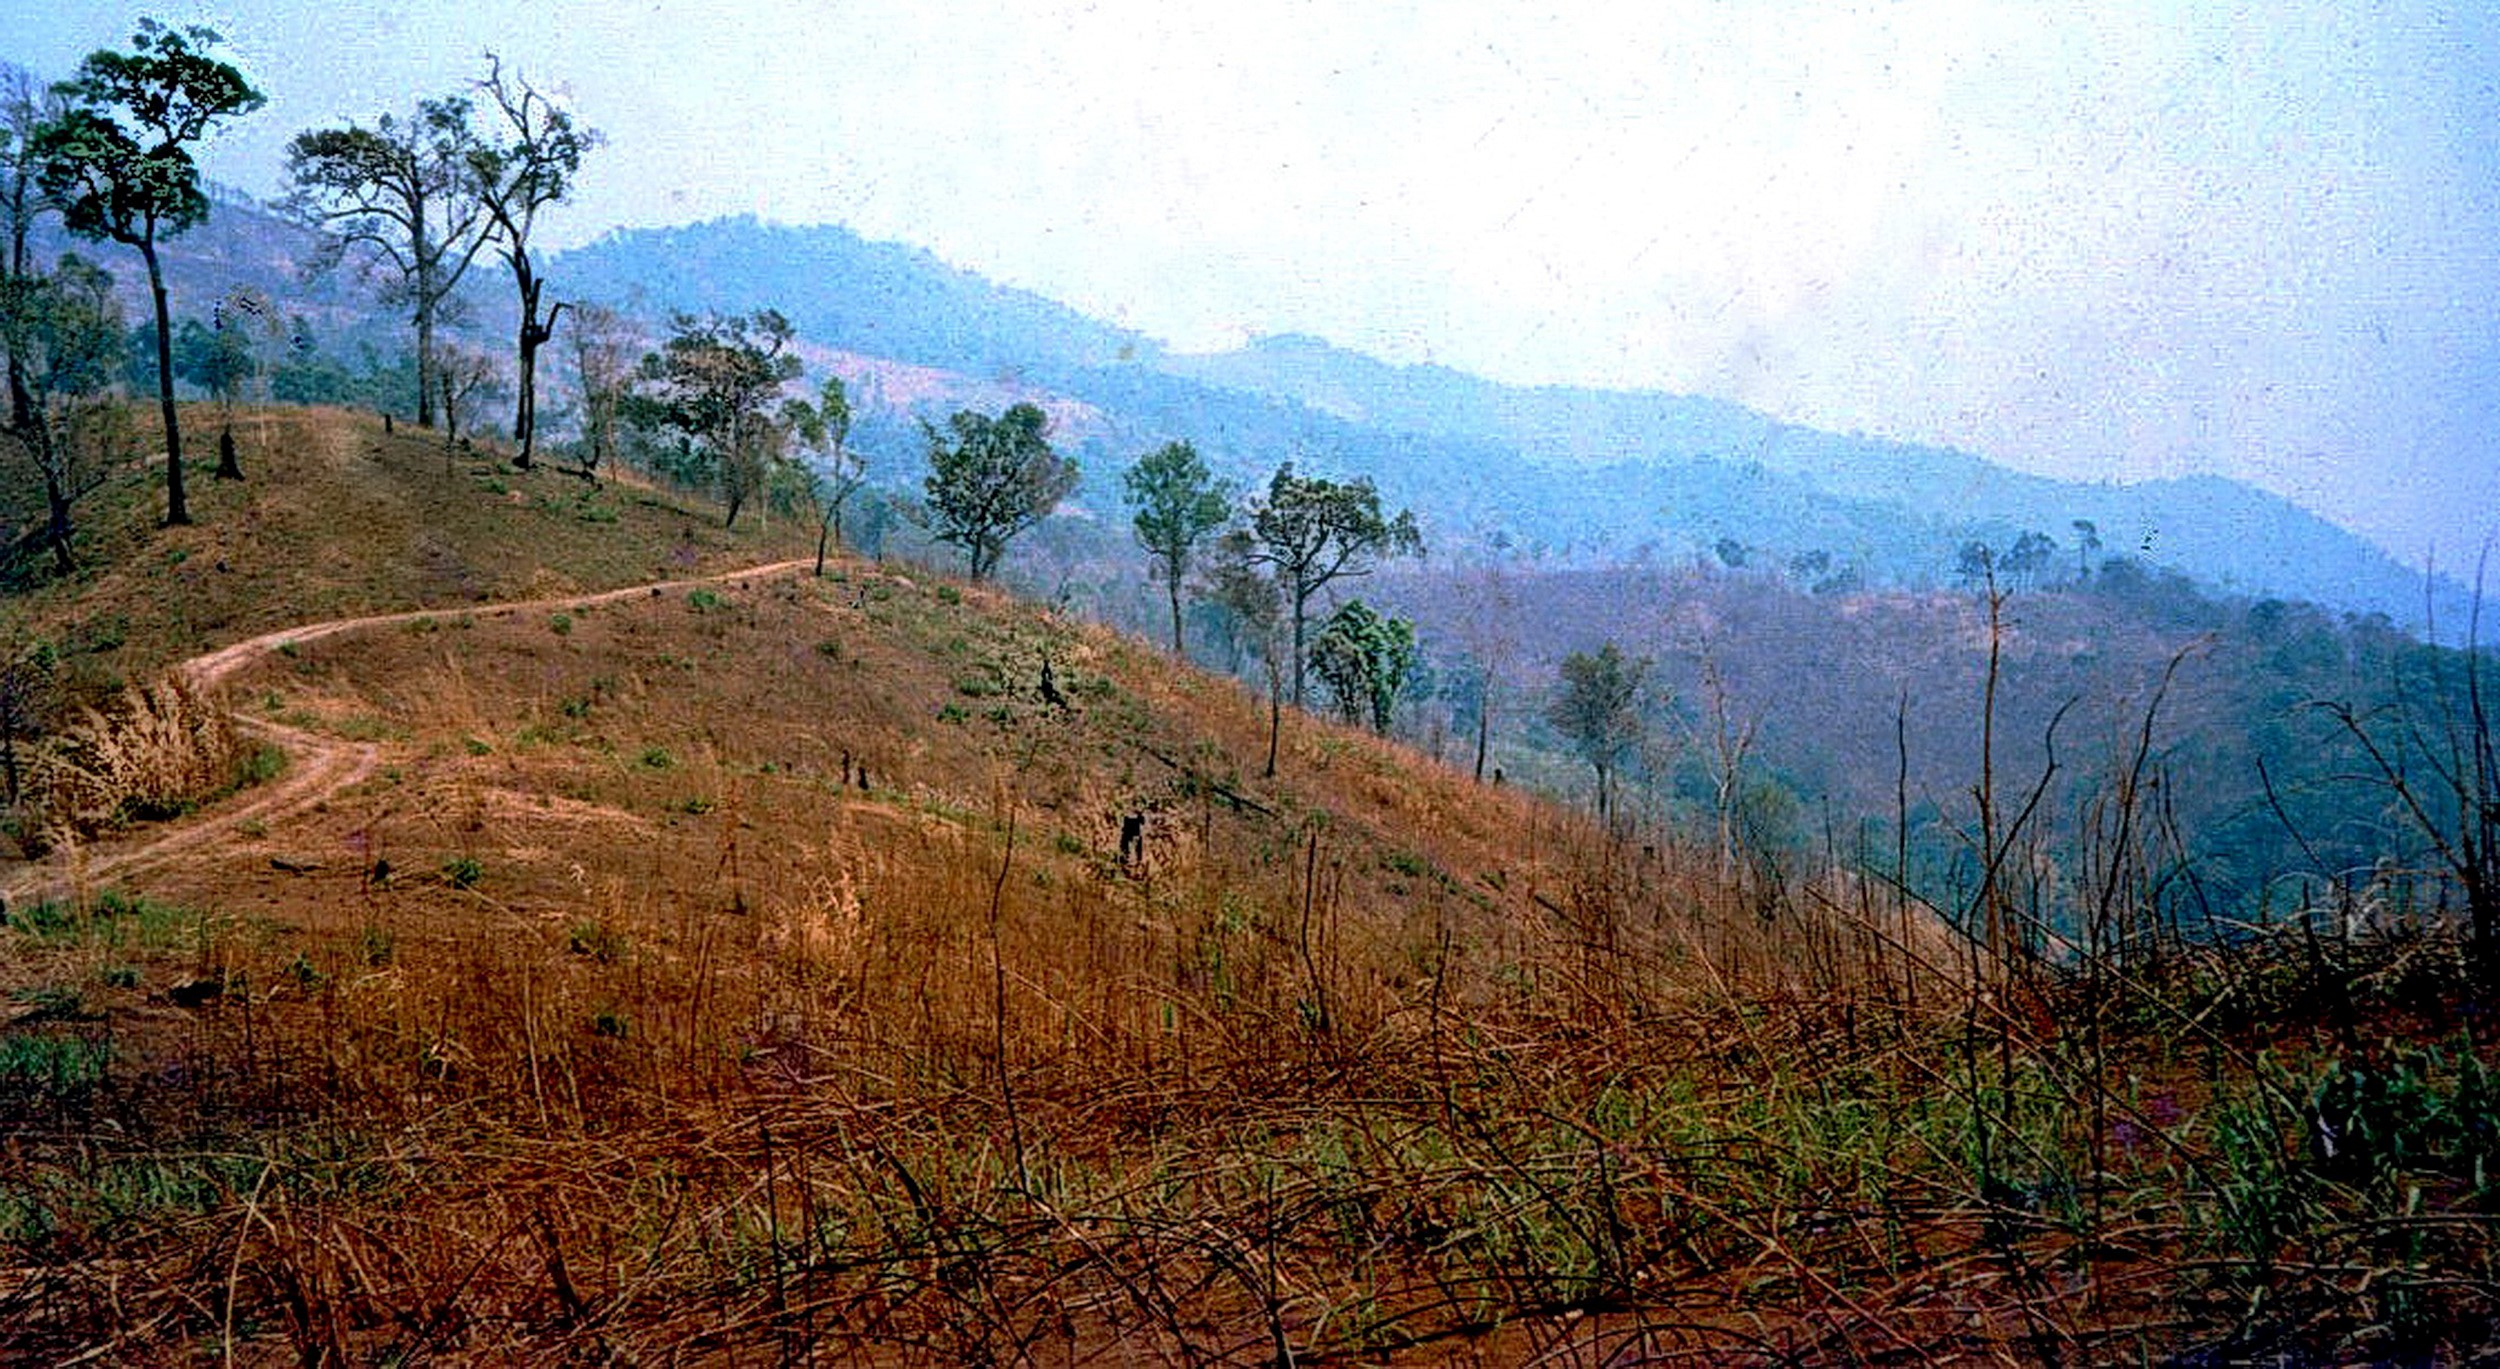 A forest area in Thailand before restoration